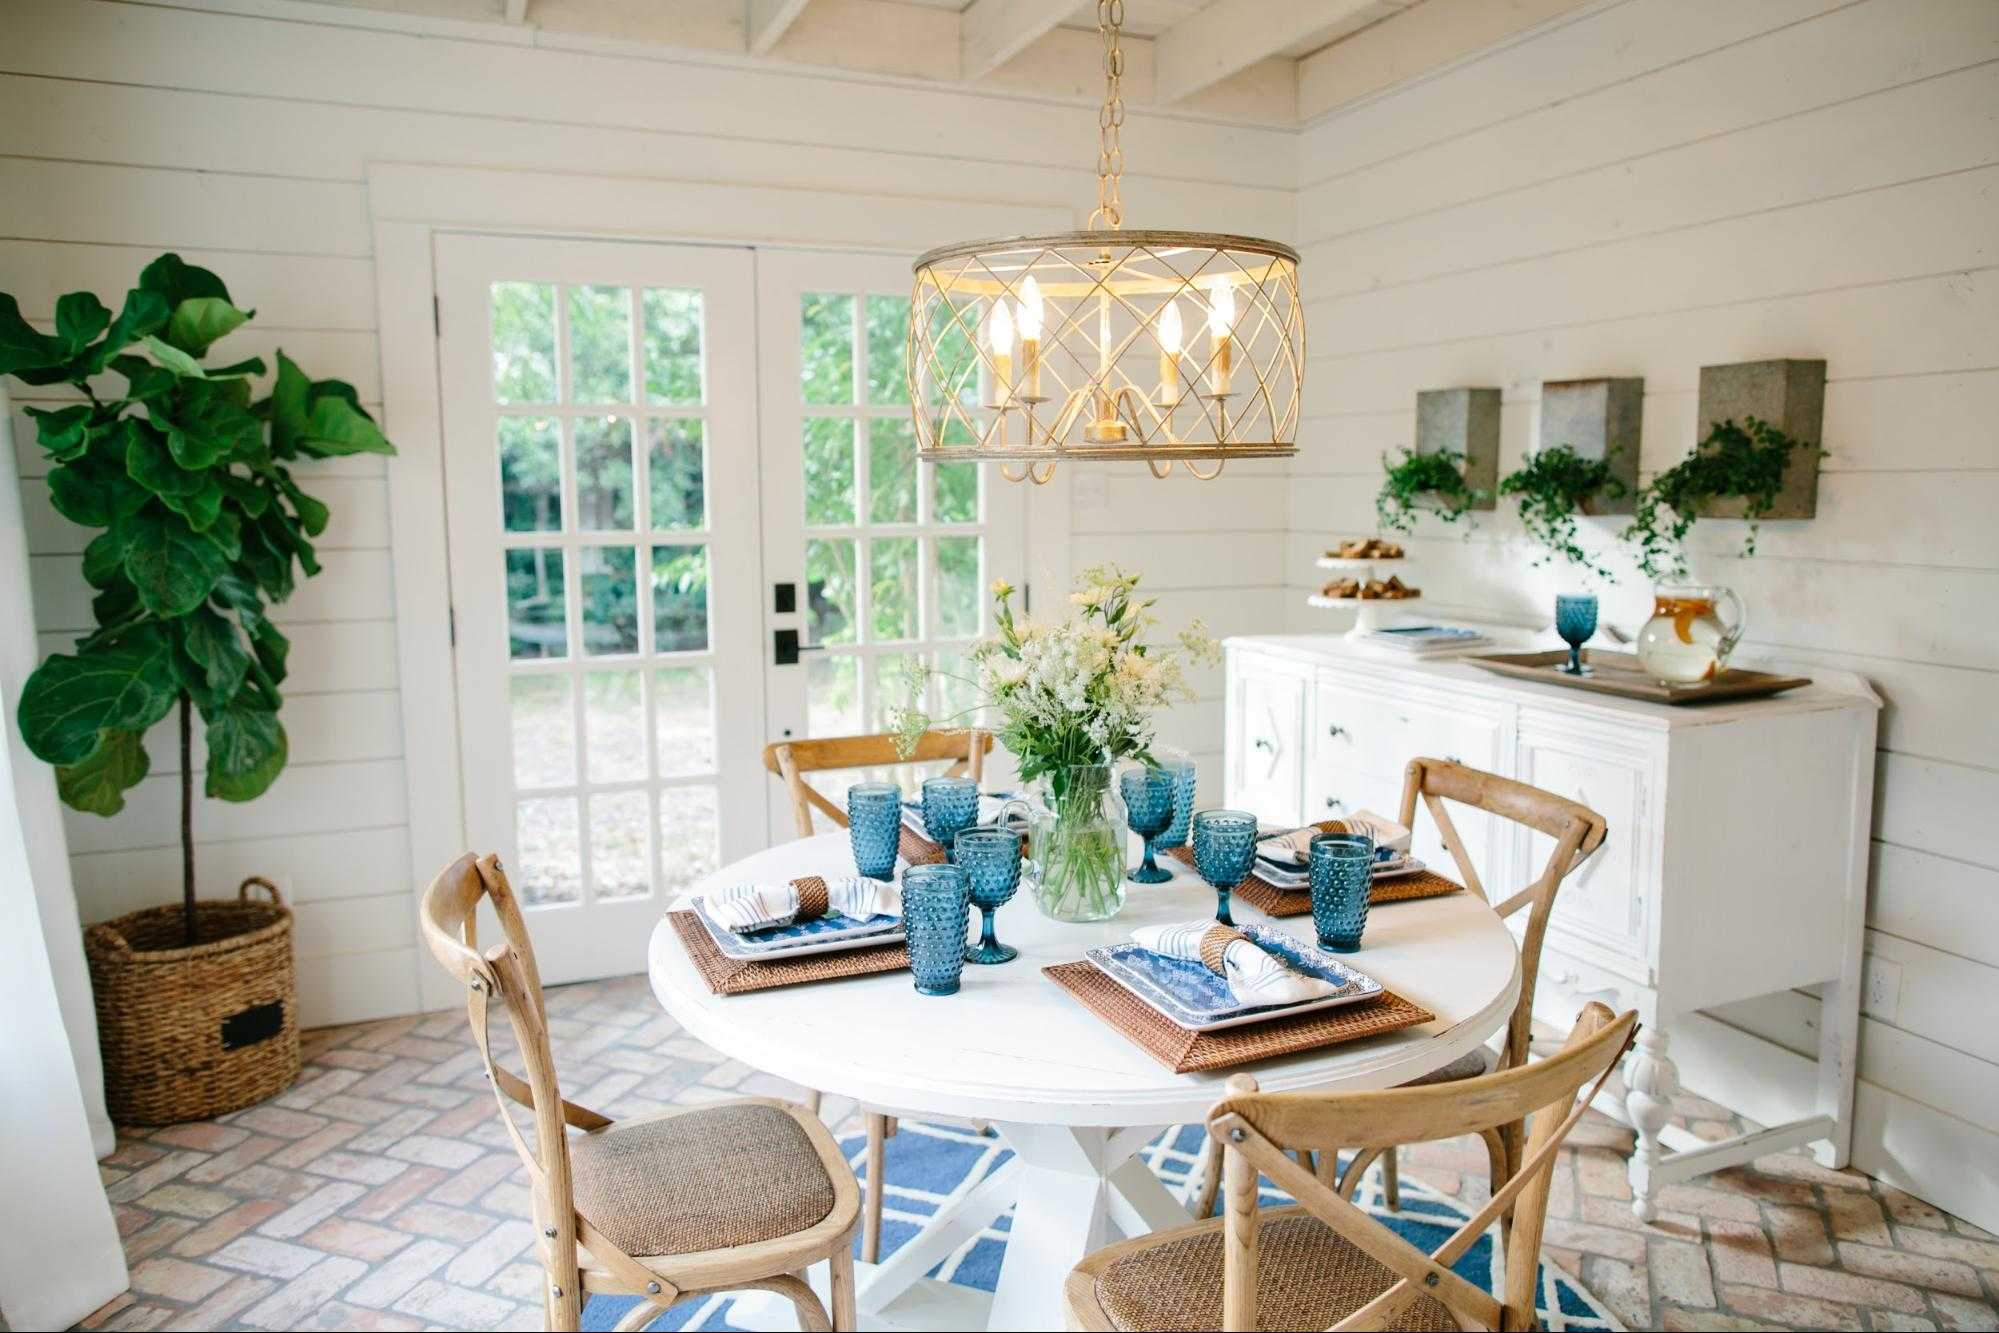 Fixer upper breakfast room design details for Does the furniture stay on fixer upper